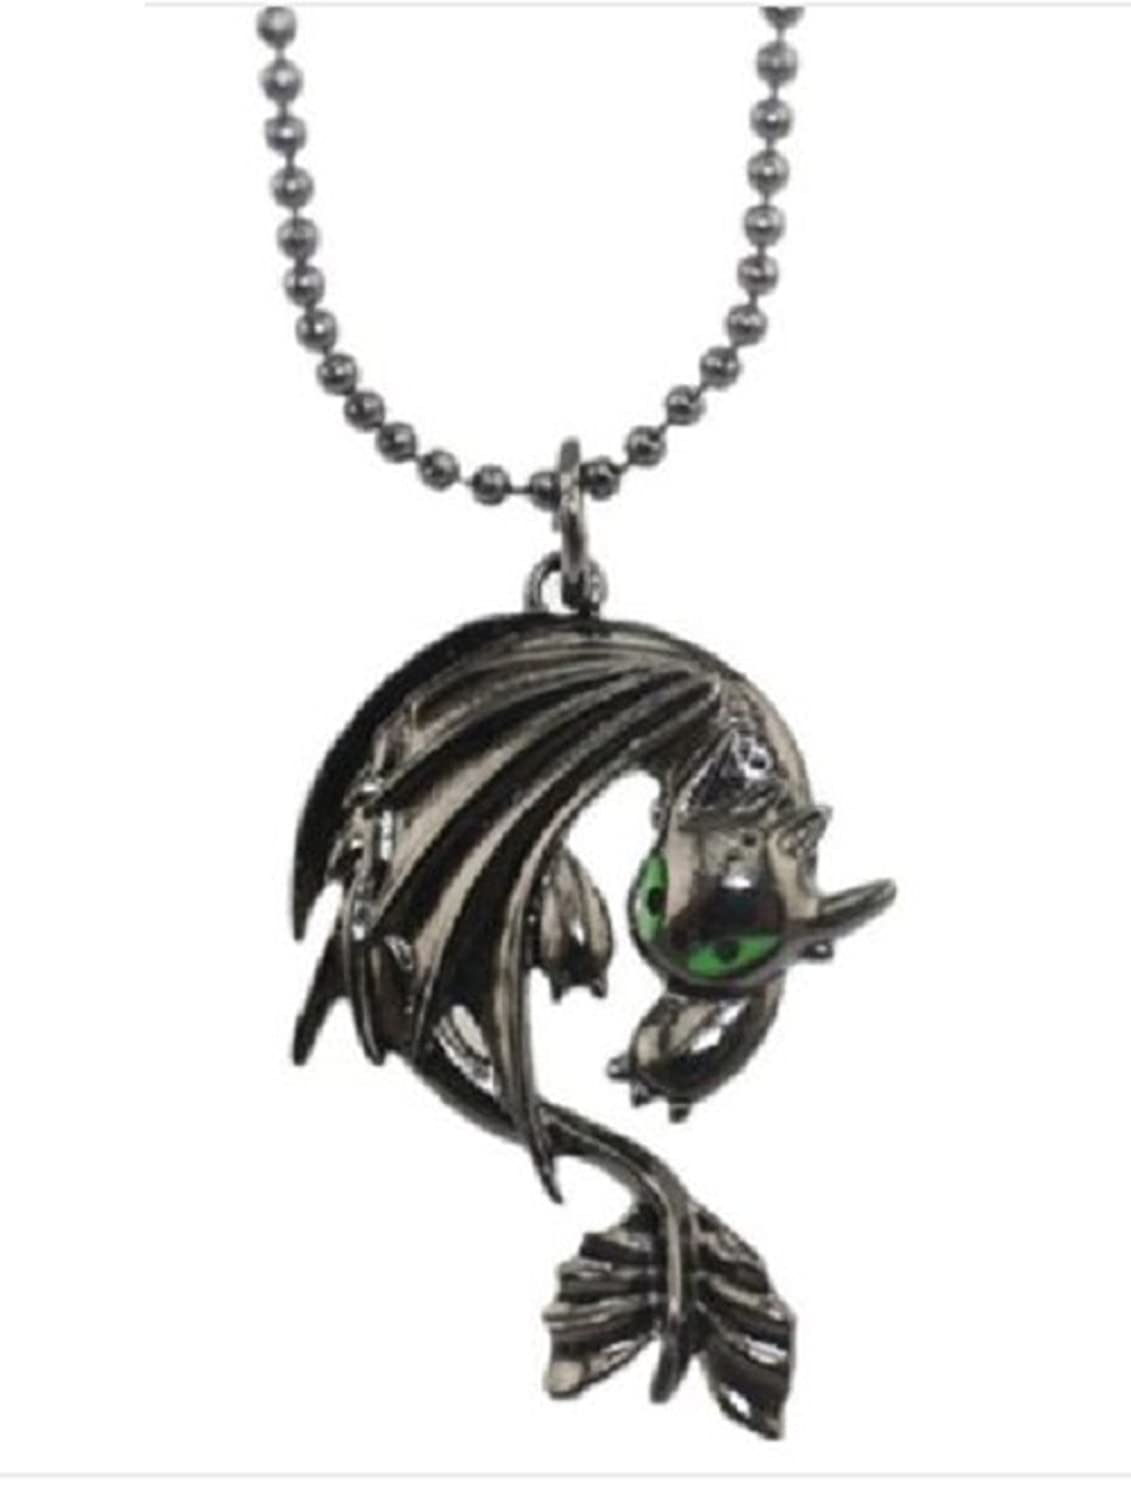 How To Train Your Dragon 2 Toothless Night Fury Animal Necklace Pendant:  Amazon: Jewellery